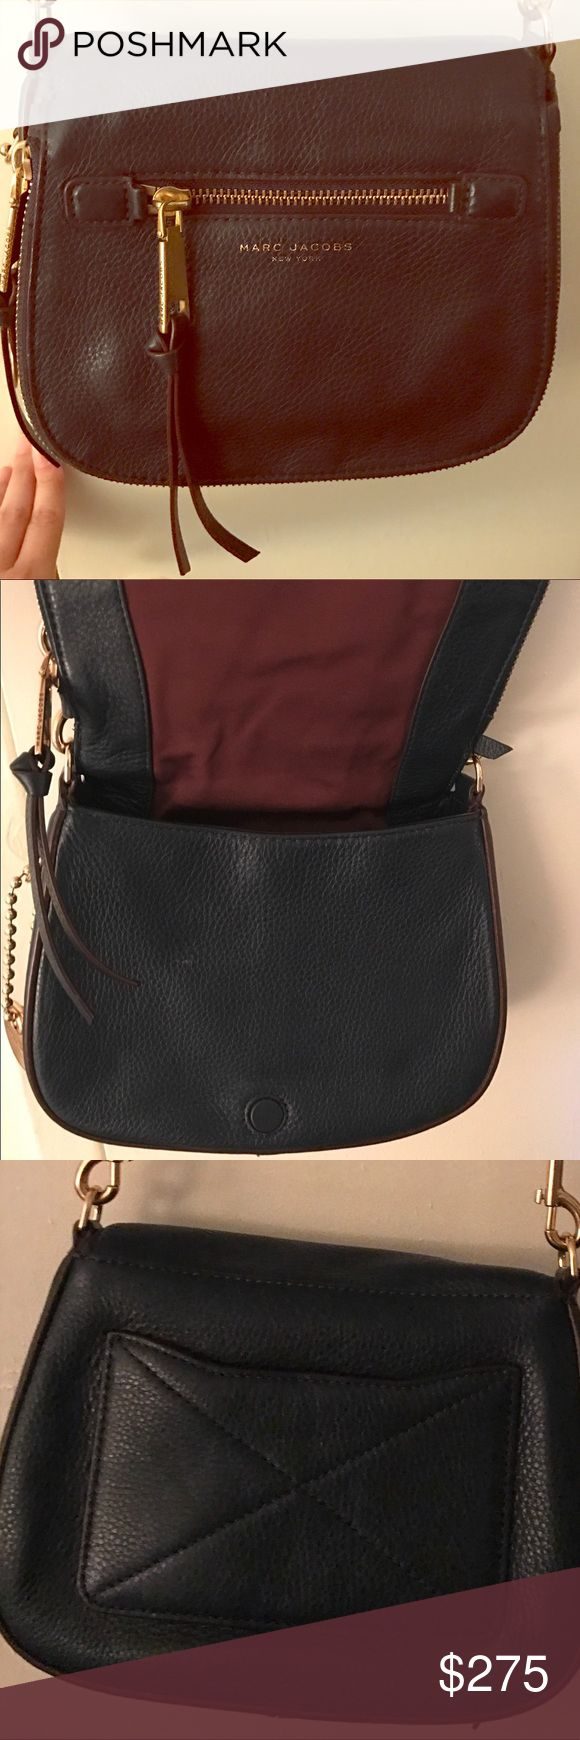 Marc Jacobs Recruit small saddle bag. Navy, Fairly used saddle bag. In great condition. Looking to give someone a great deal on a great bag! Marc Jacobs Bags Crossbody Bags